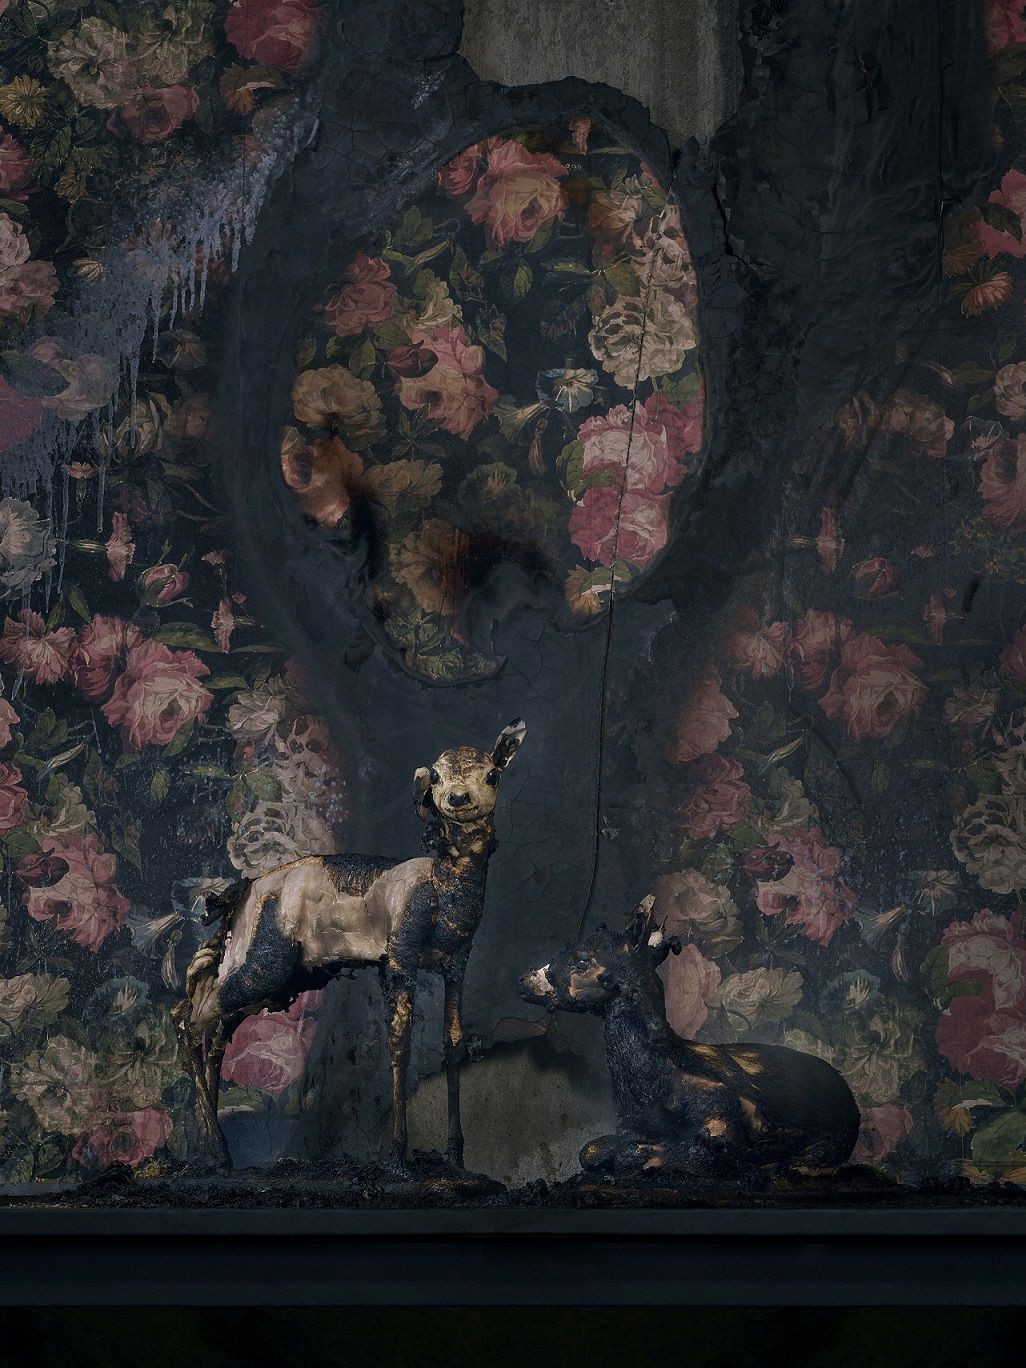 Fawns 2, série Residence of Impermanence,Christian Houge,Photographie contemporaine